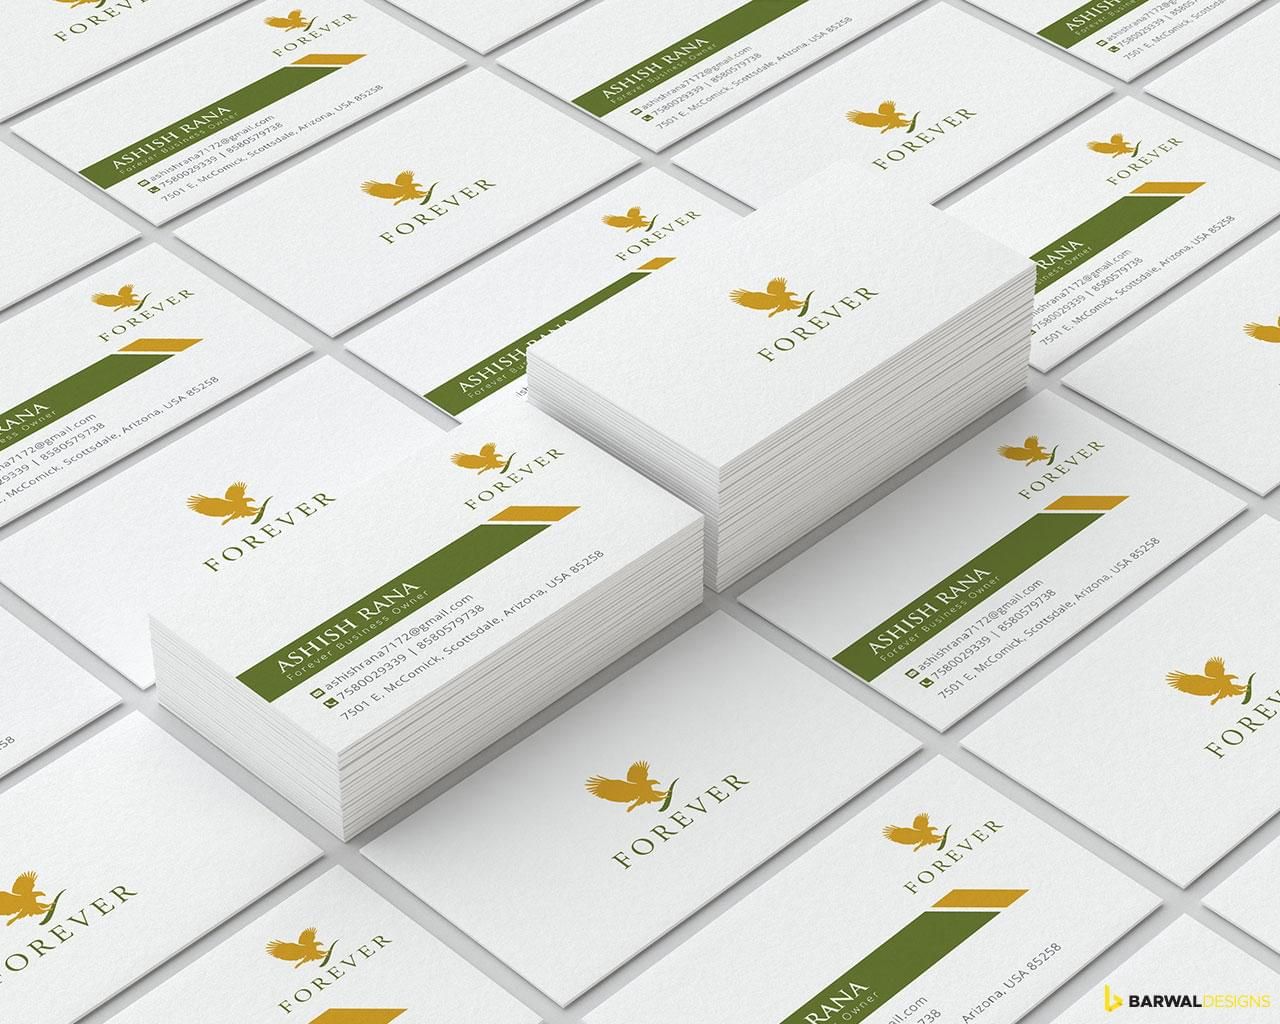 Professional Business Card Design by BarwalDesigns - 115955